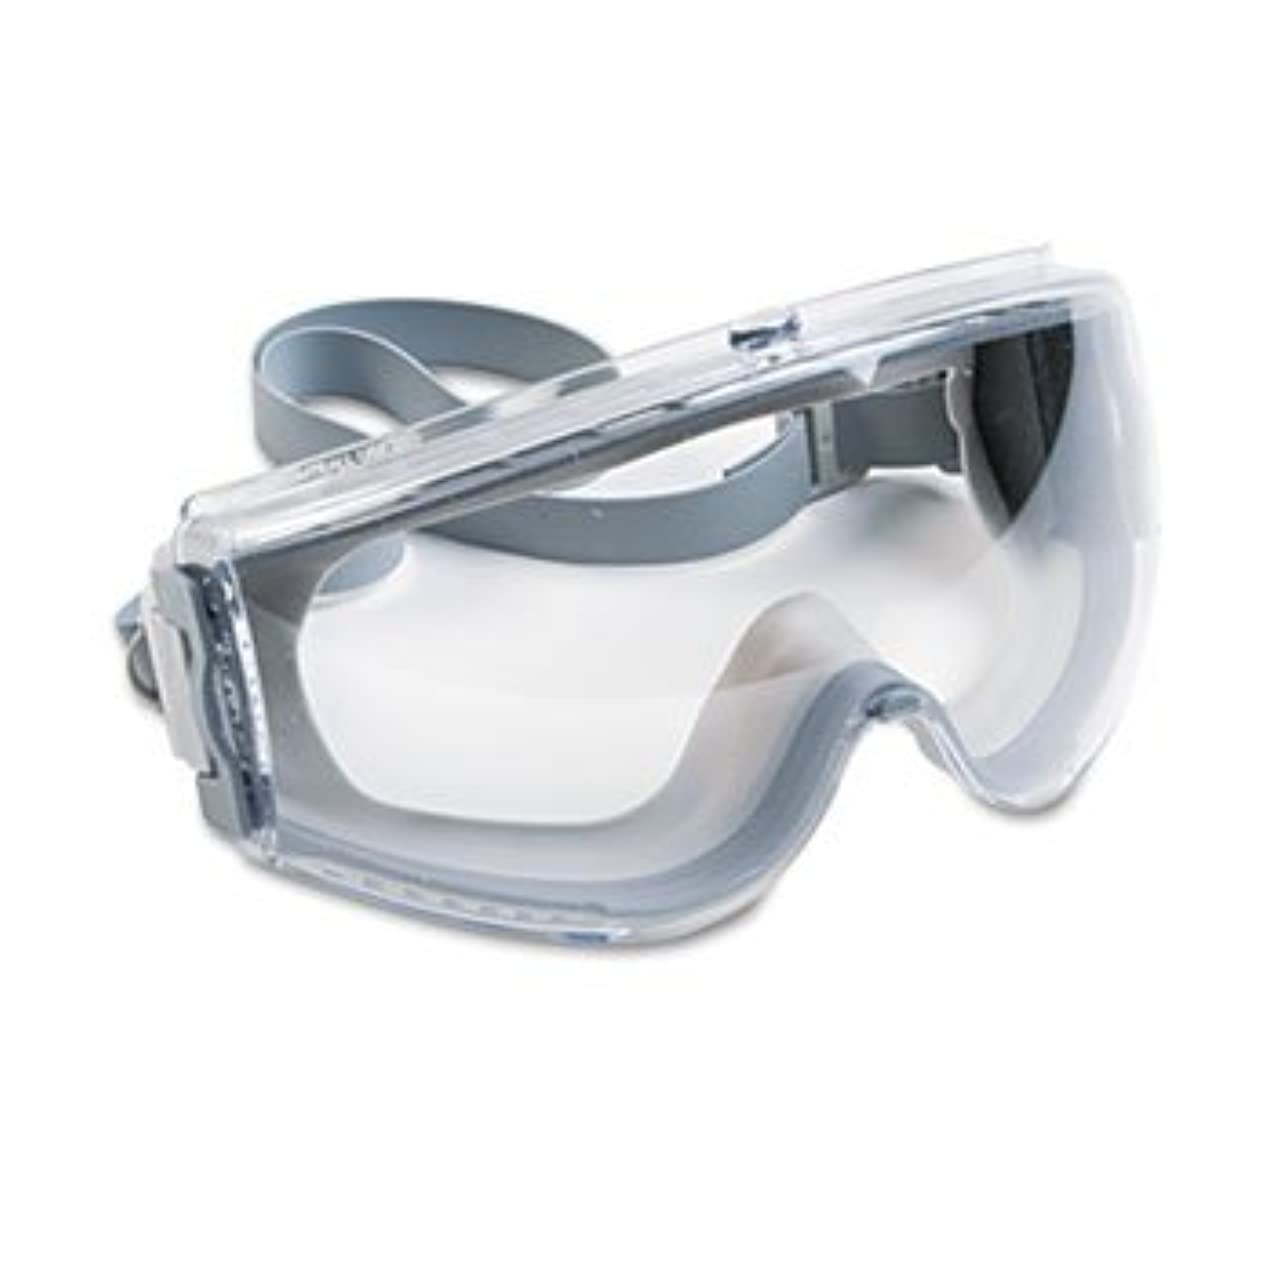 SPERIAN PROTECTION AMERICAS Stealth Antifog, Antiscratch, Antistatic Goggles, Clear Lens, Gray Frame